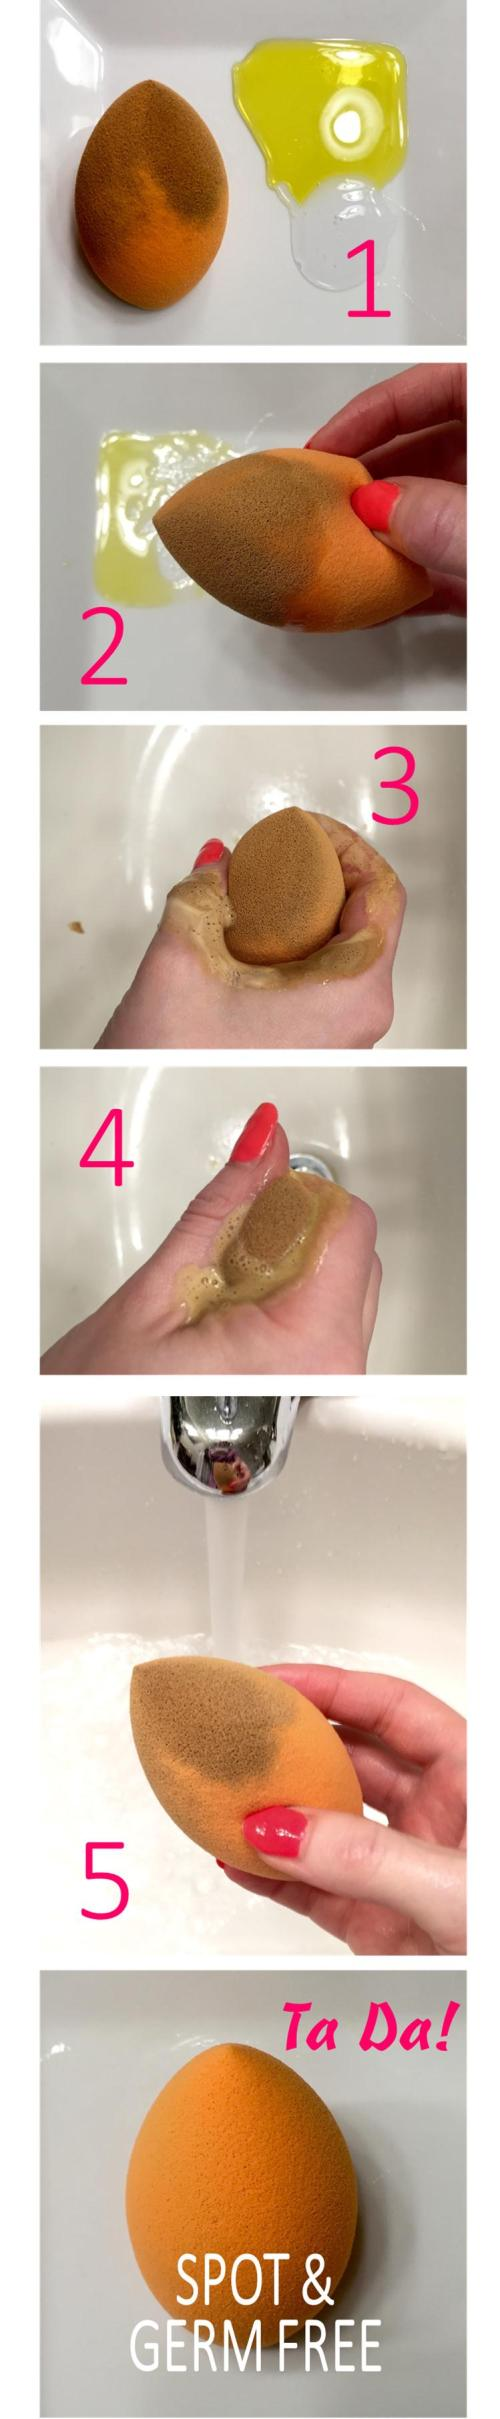 Step By Step Tutorial for a Clean Complexion Sponge